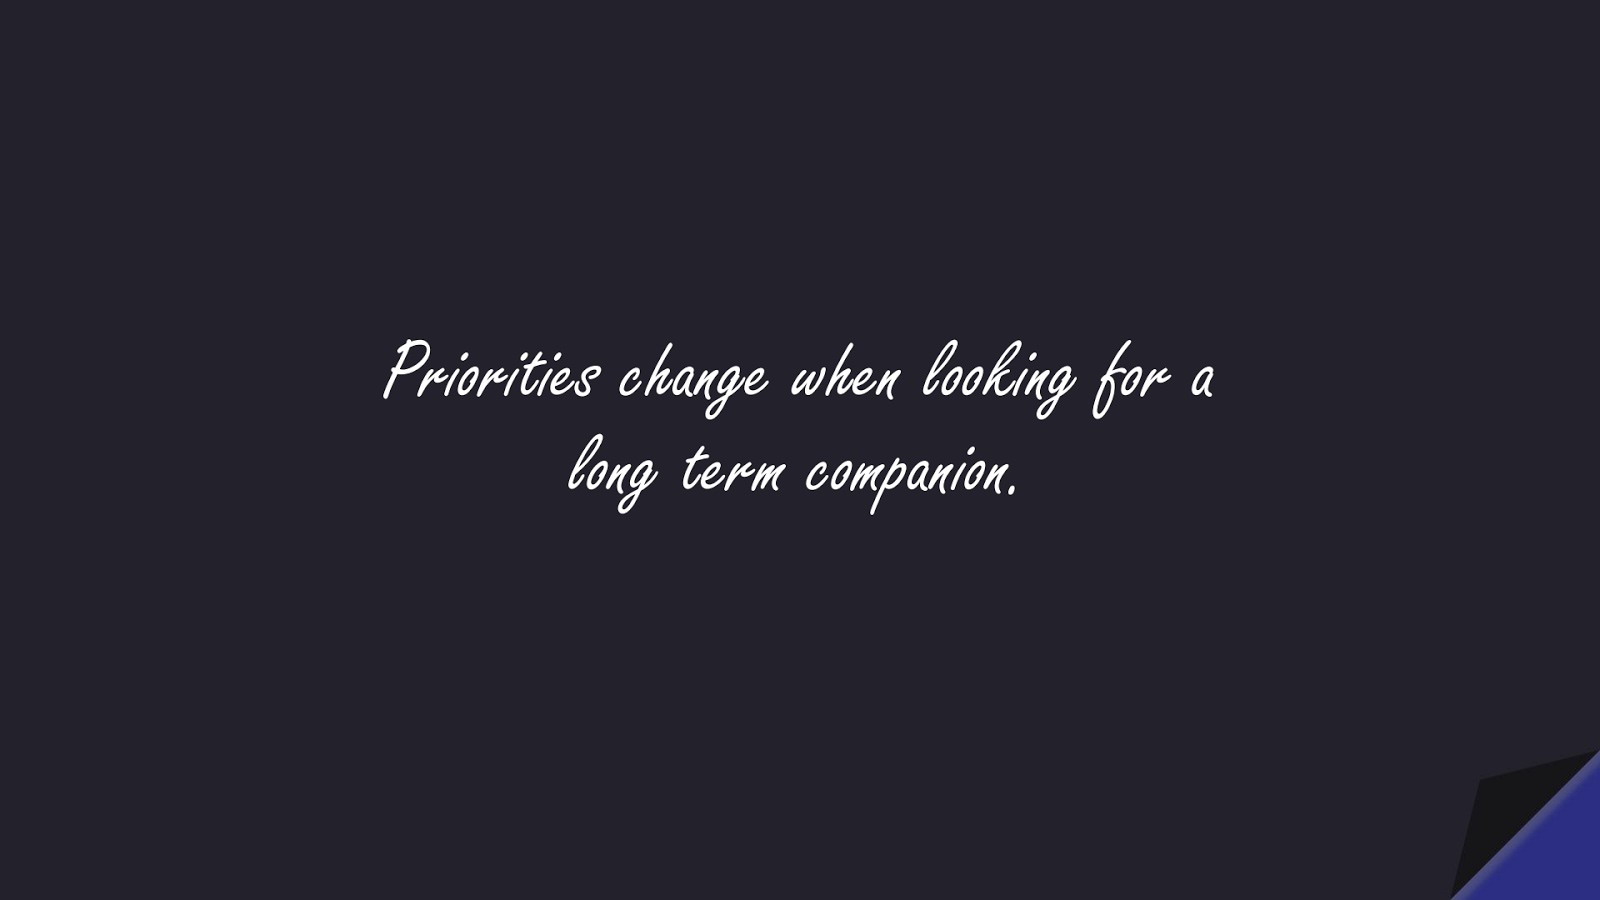 Priorities change when looking for a long term companion.FALSE